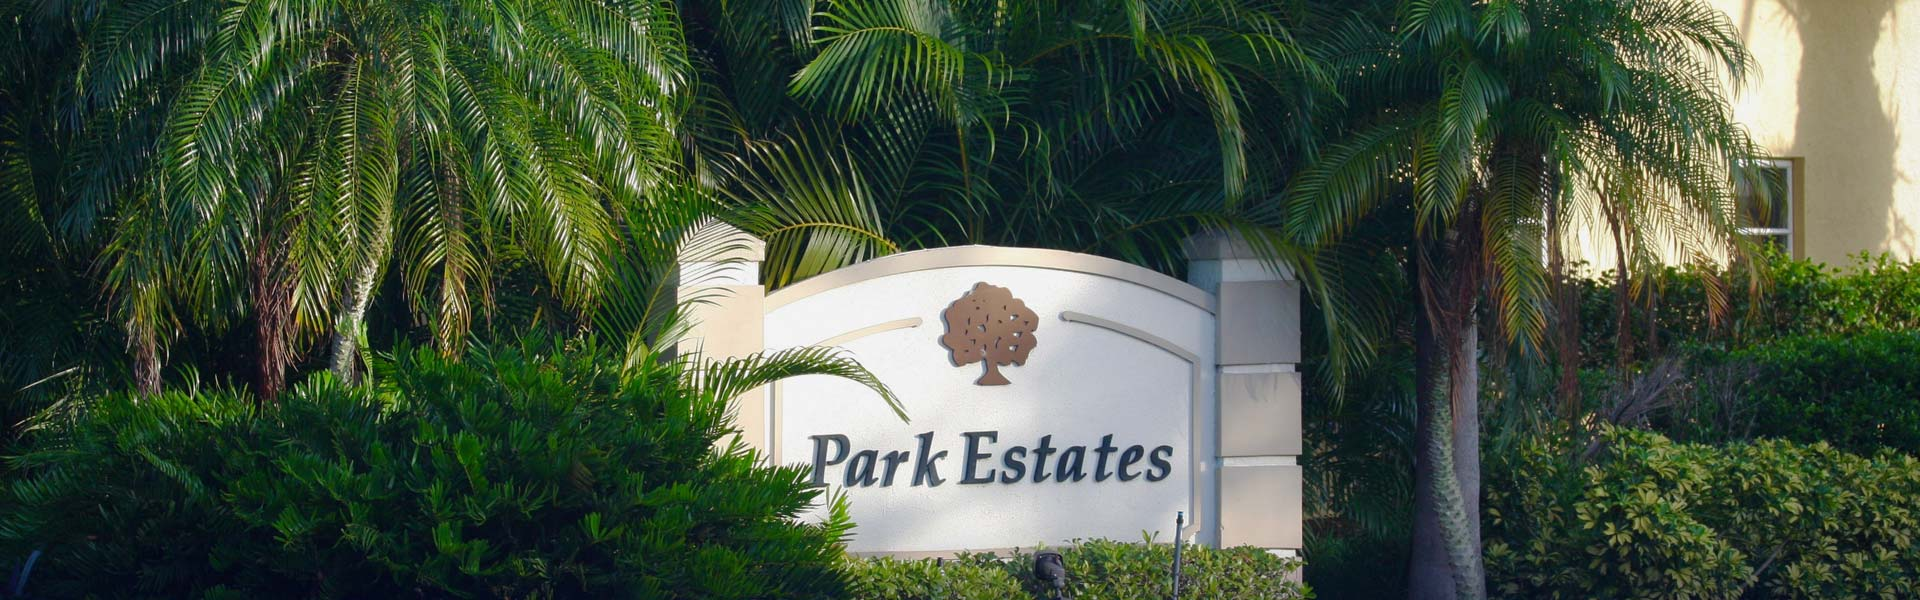 Park Estates Welcome Sign